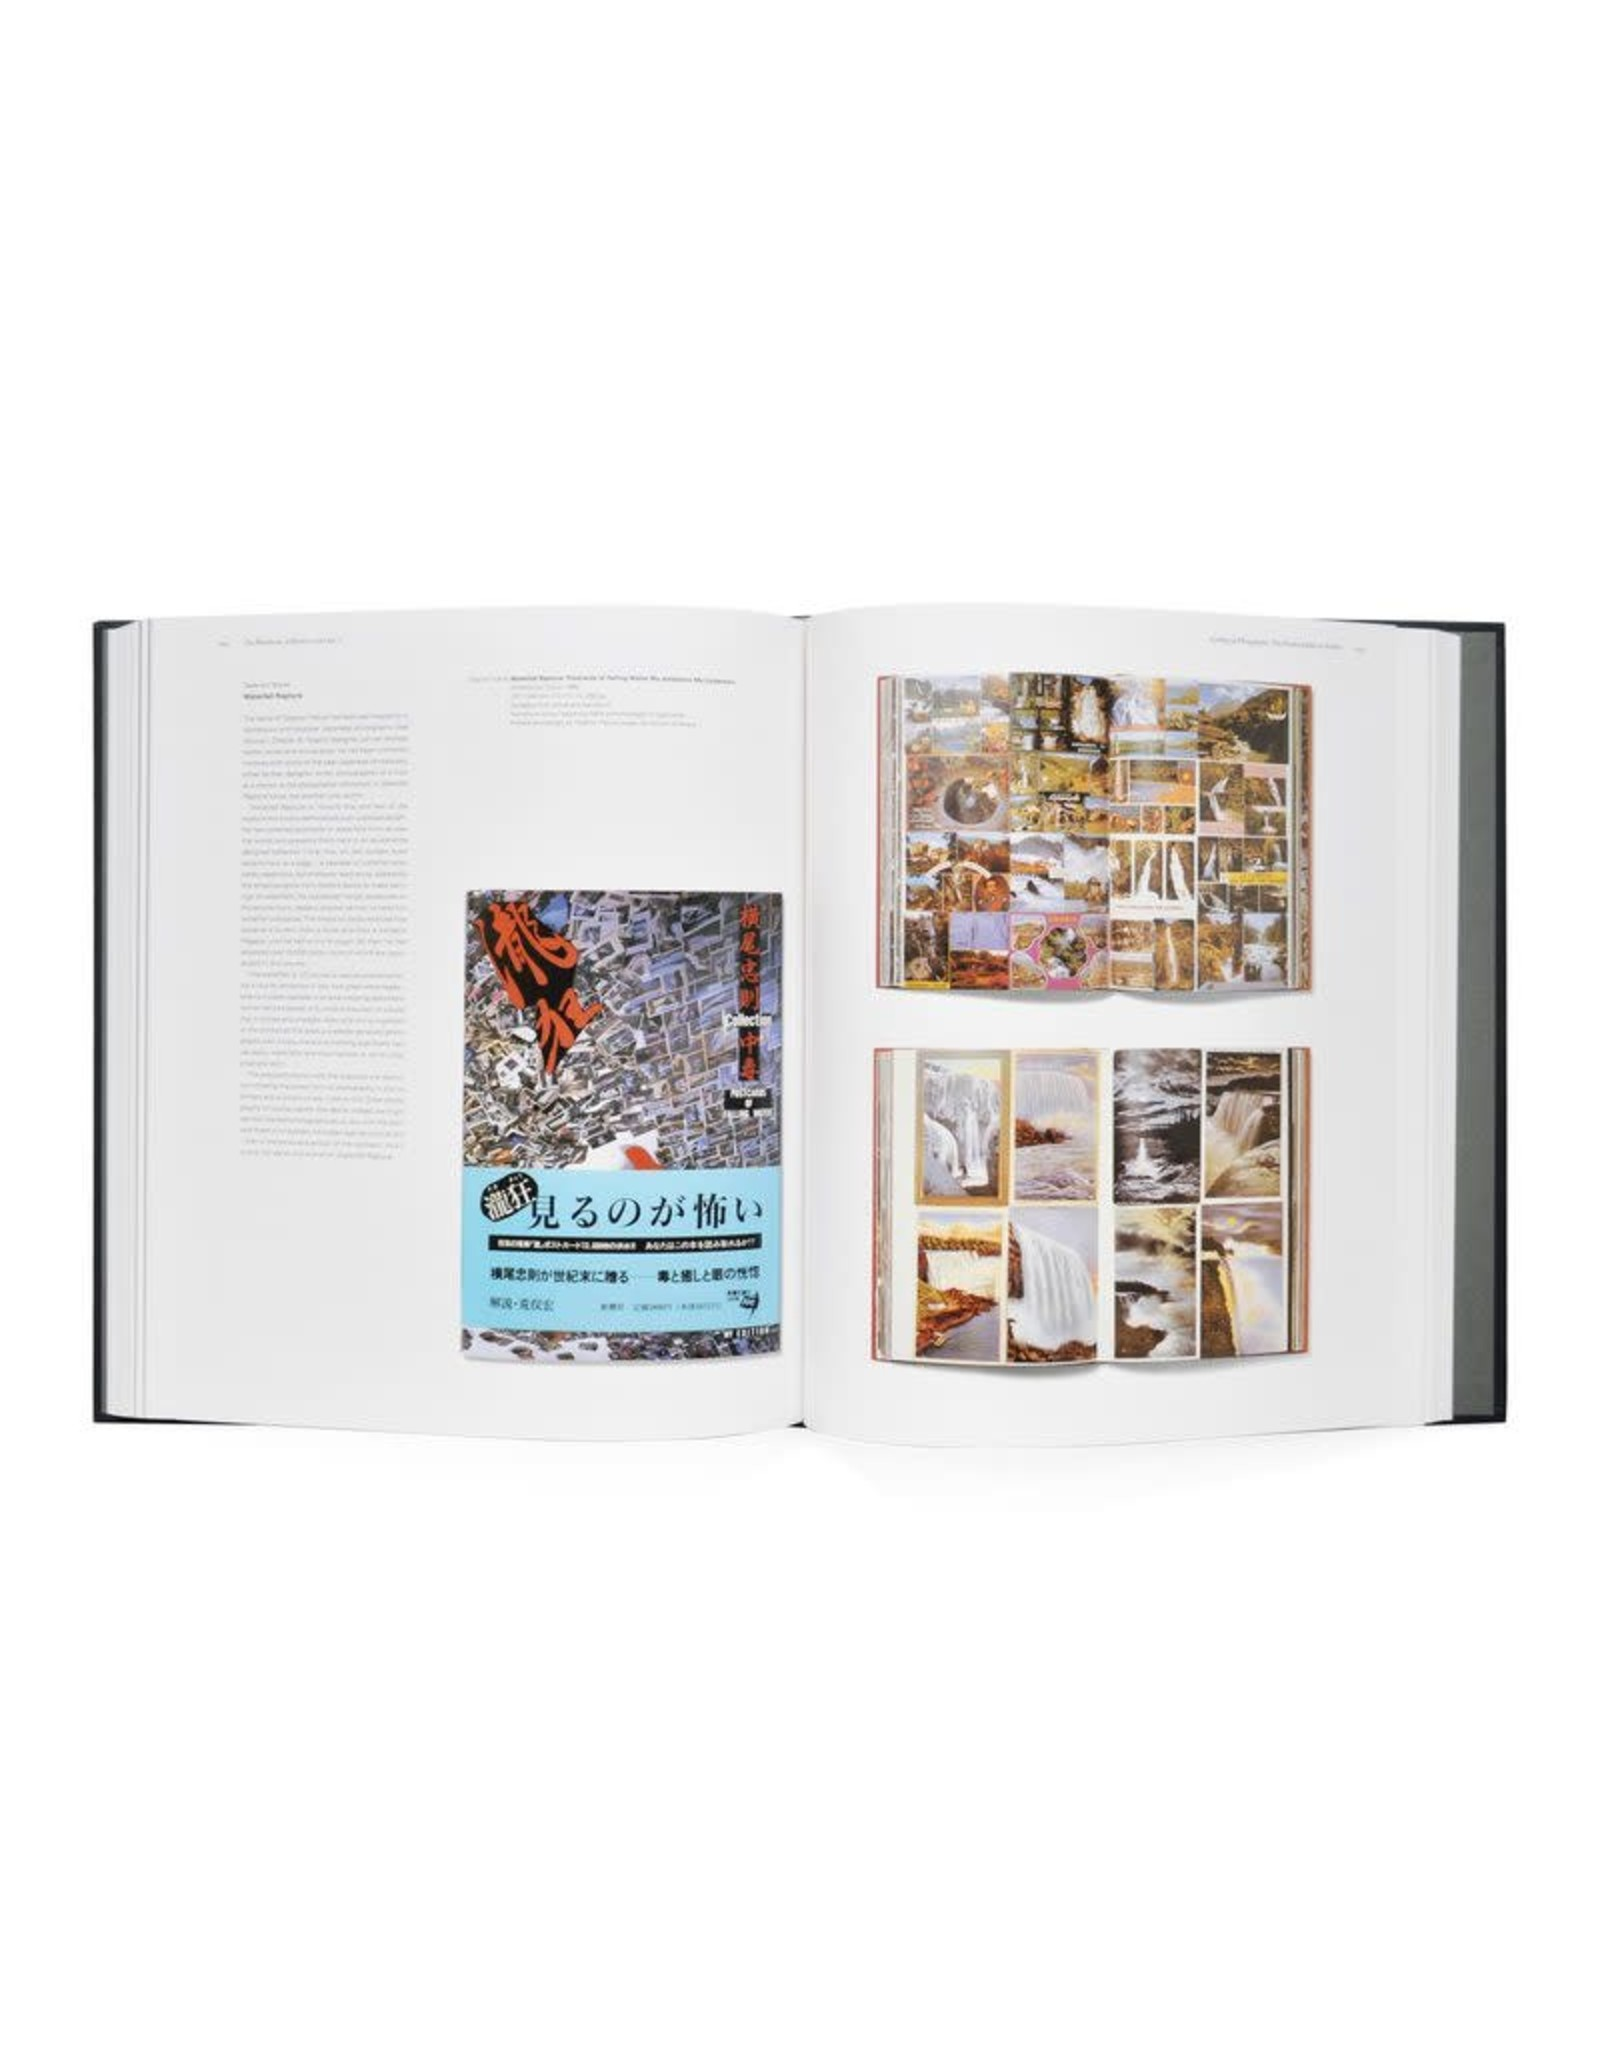 The Photobook: A History Vol. II by Martin Parr and Gerry Badger